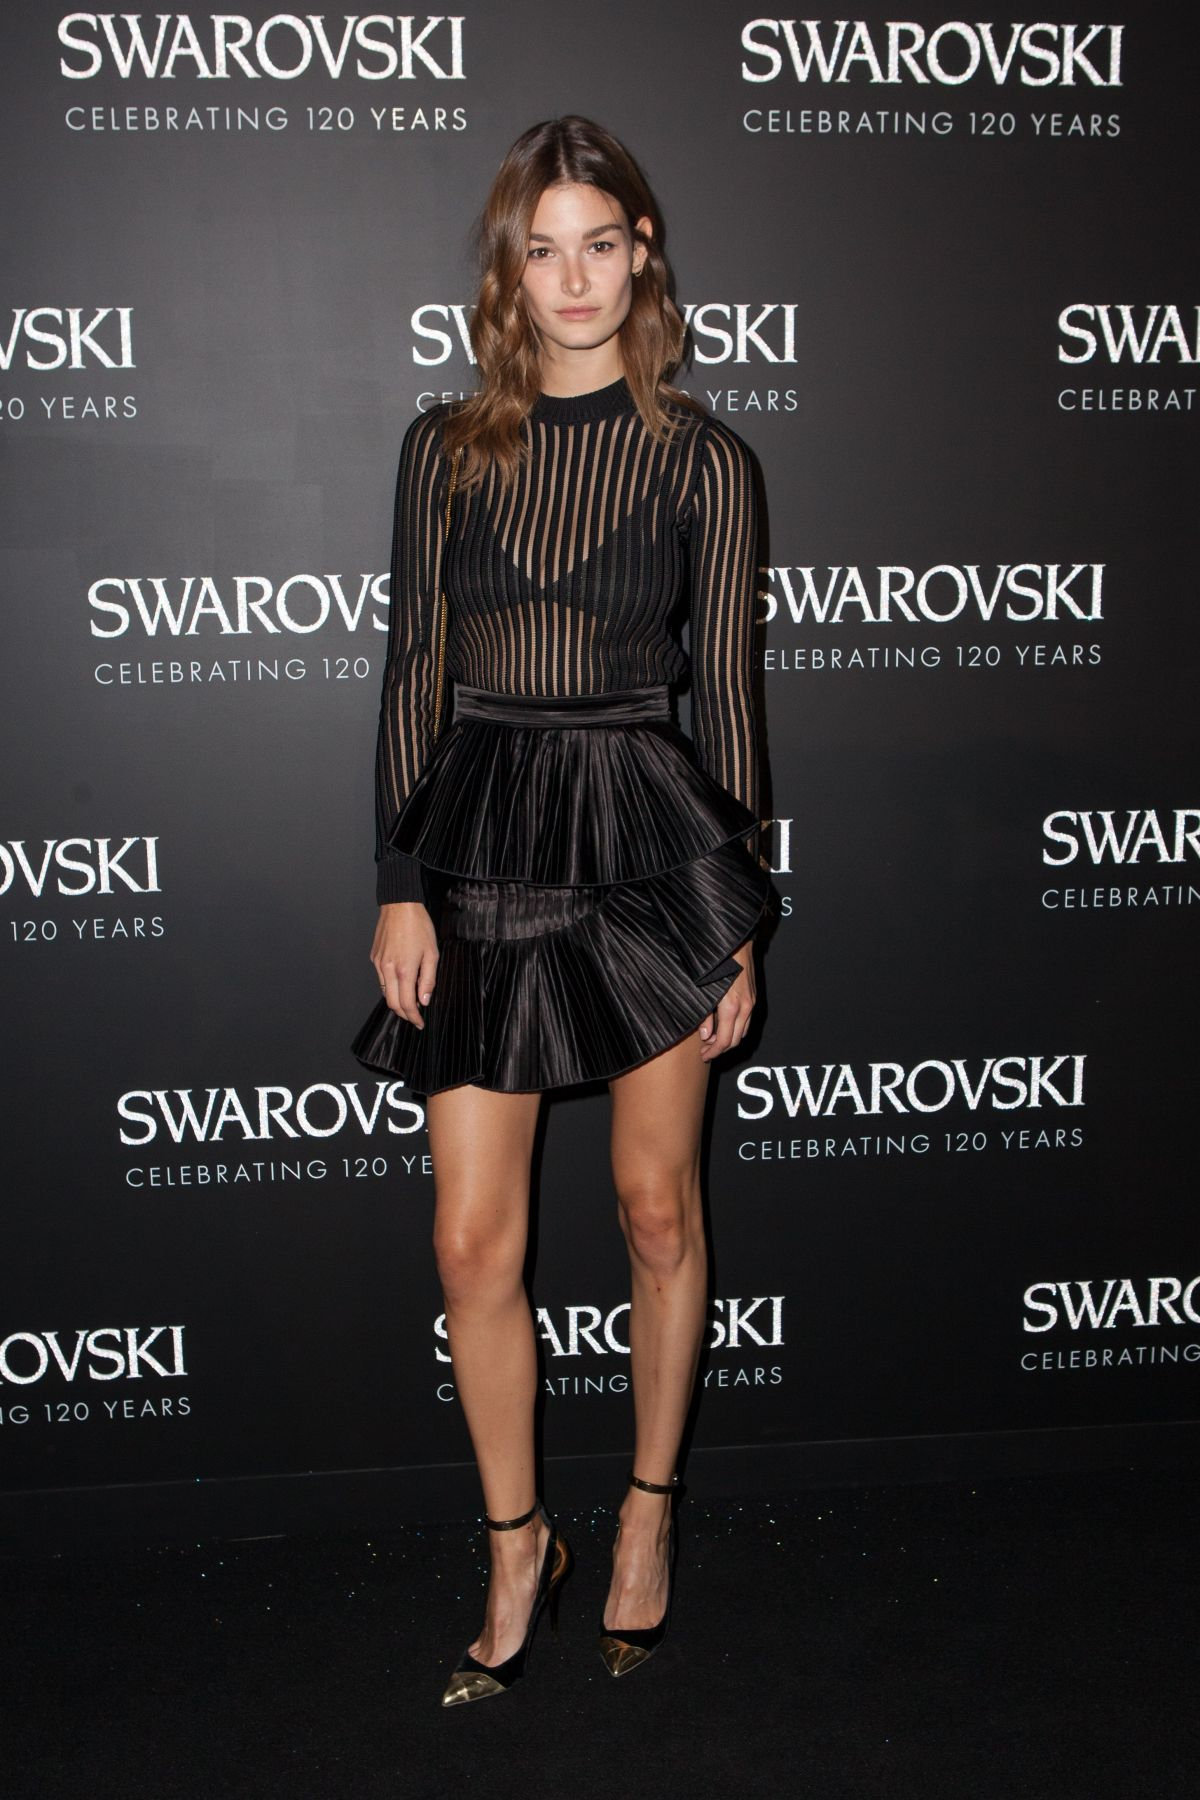 OPHELIE GUILLERMAND at Swarovski 120 x Rizzoli Exhibition and Cocktail in Paris 09/30/2015